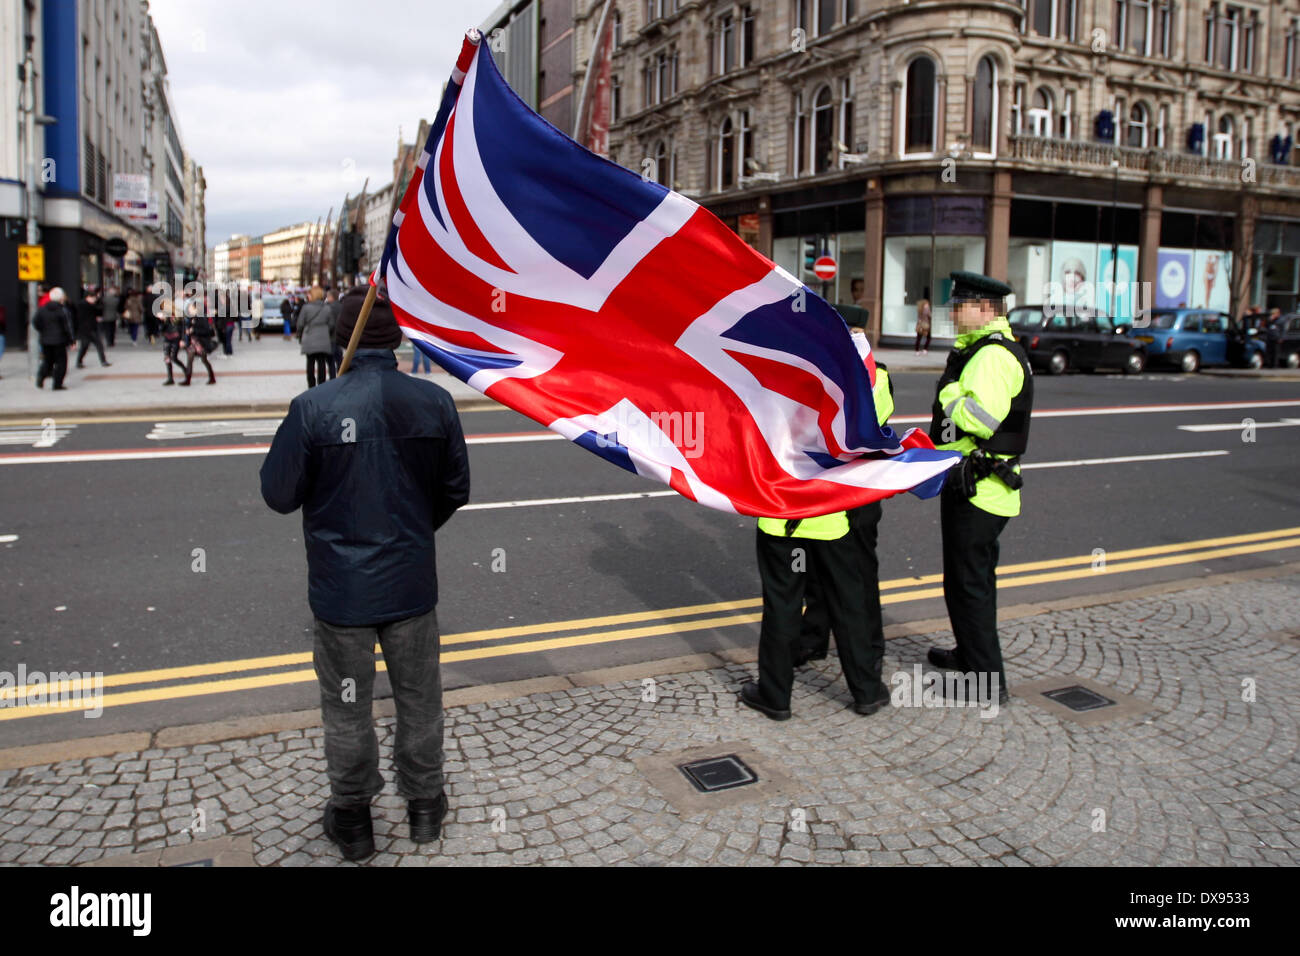 Belfast UK, 8th March 2014.  Loyalist Flag protester waves union flag outside Belfast City Hall with Police onlookers - Stock Image